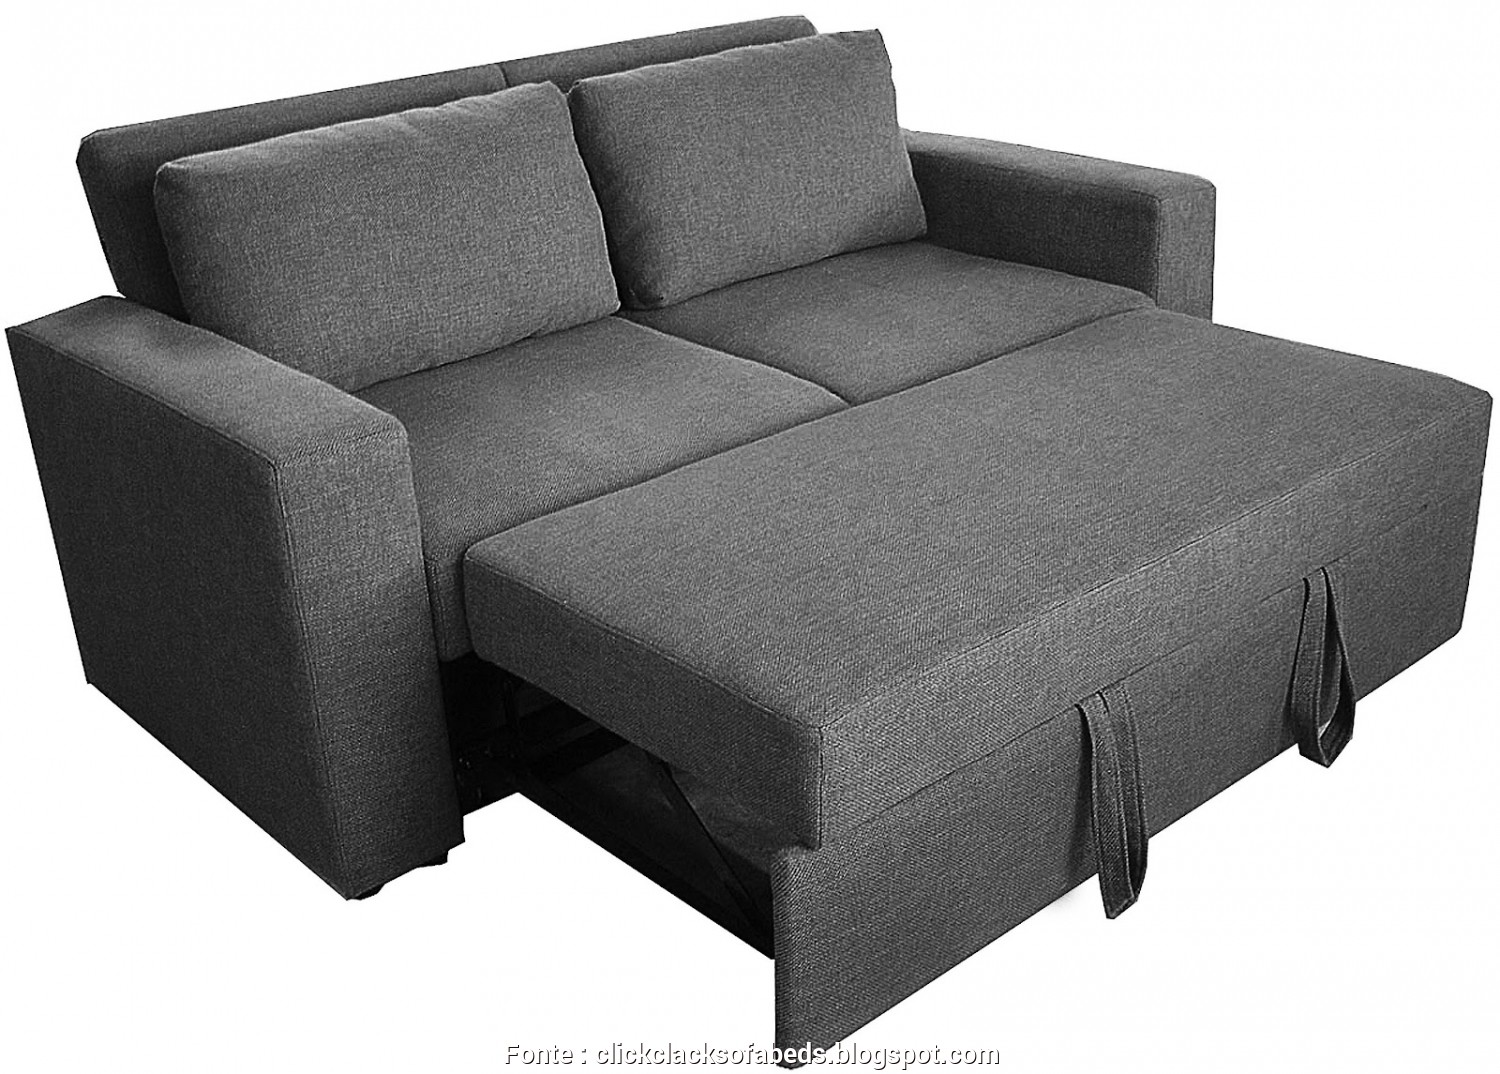 Ikea Beddinge Fold Out, Loveable Click Clack Sofa Bed, Sofa Chair Bed, Modern Leather Sofa, Ikea